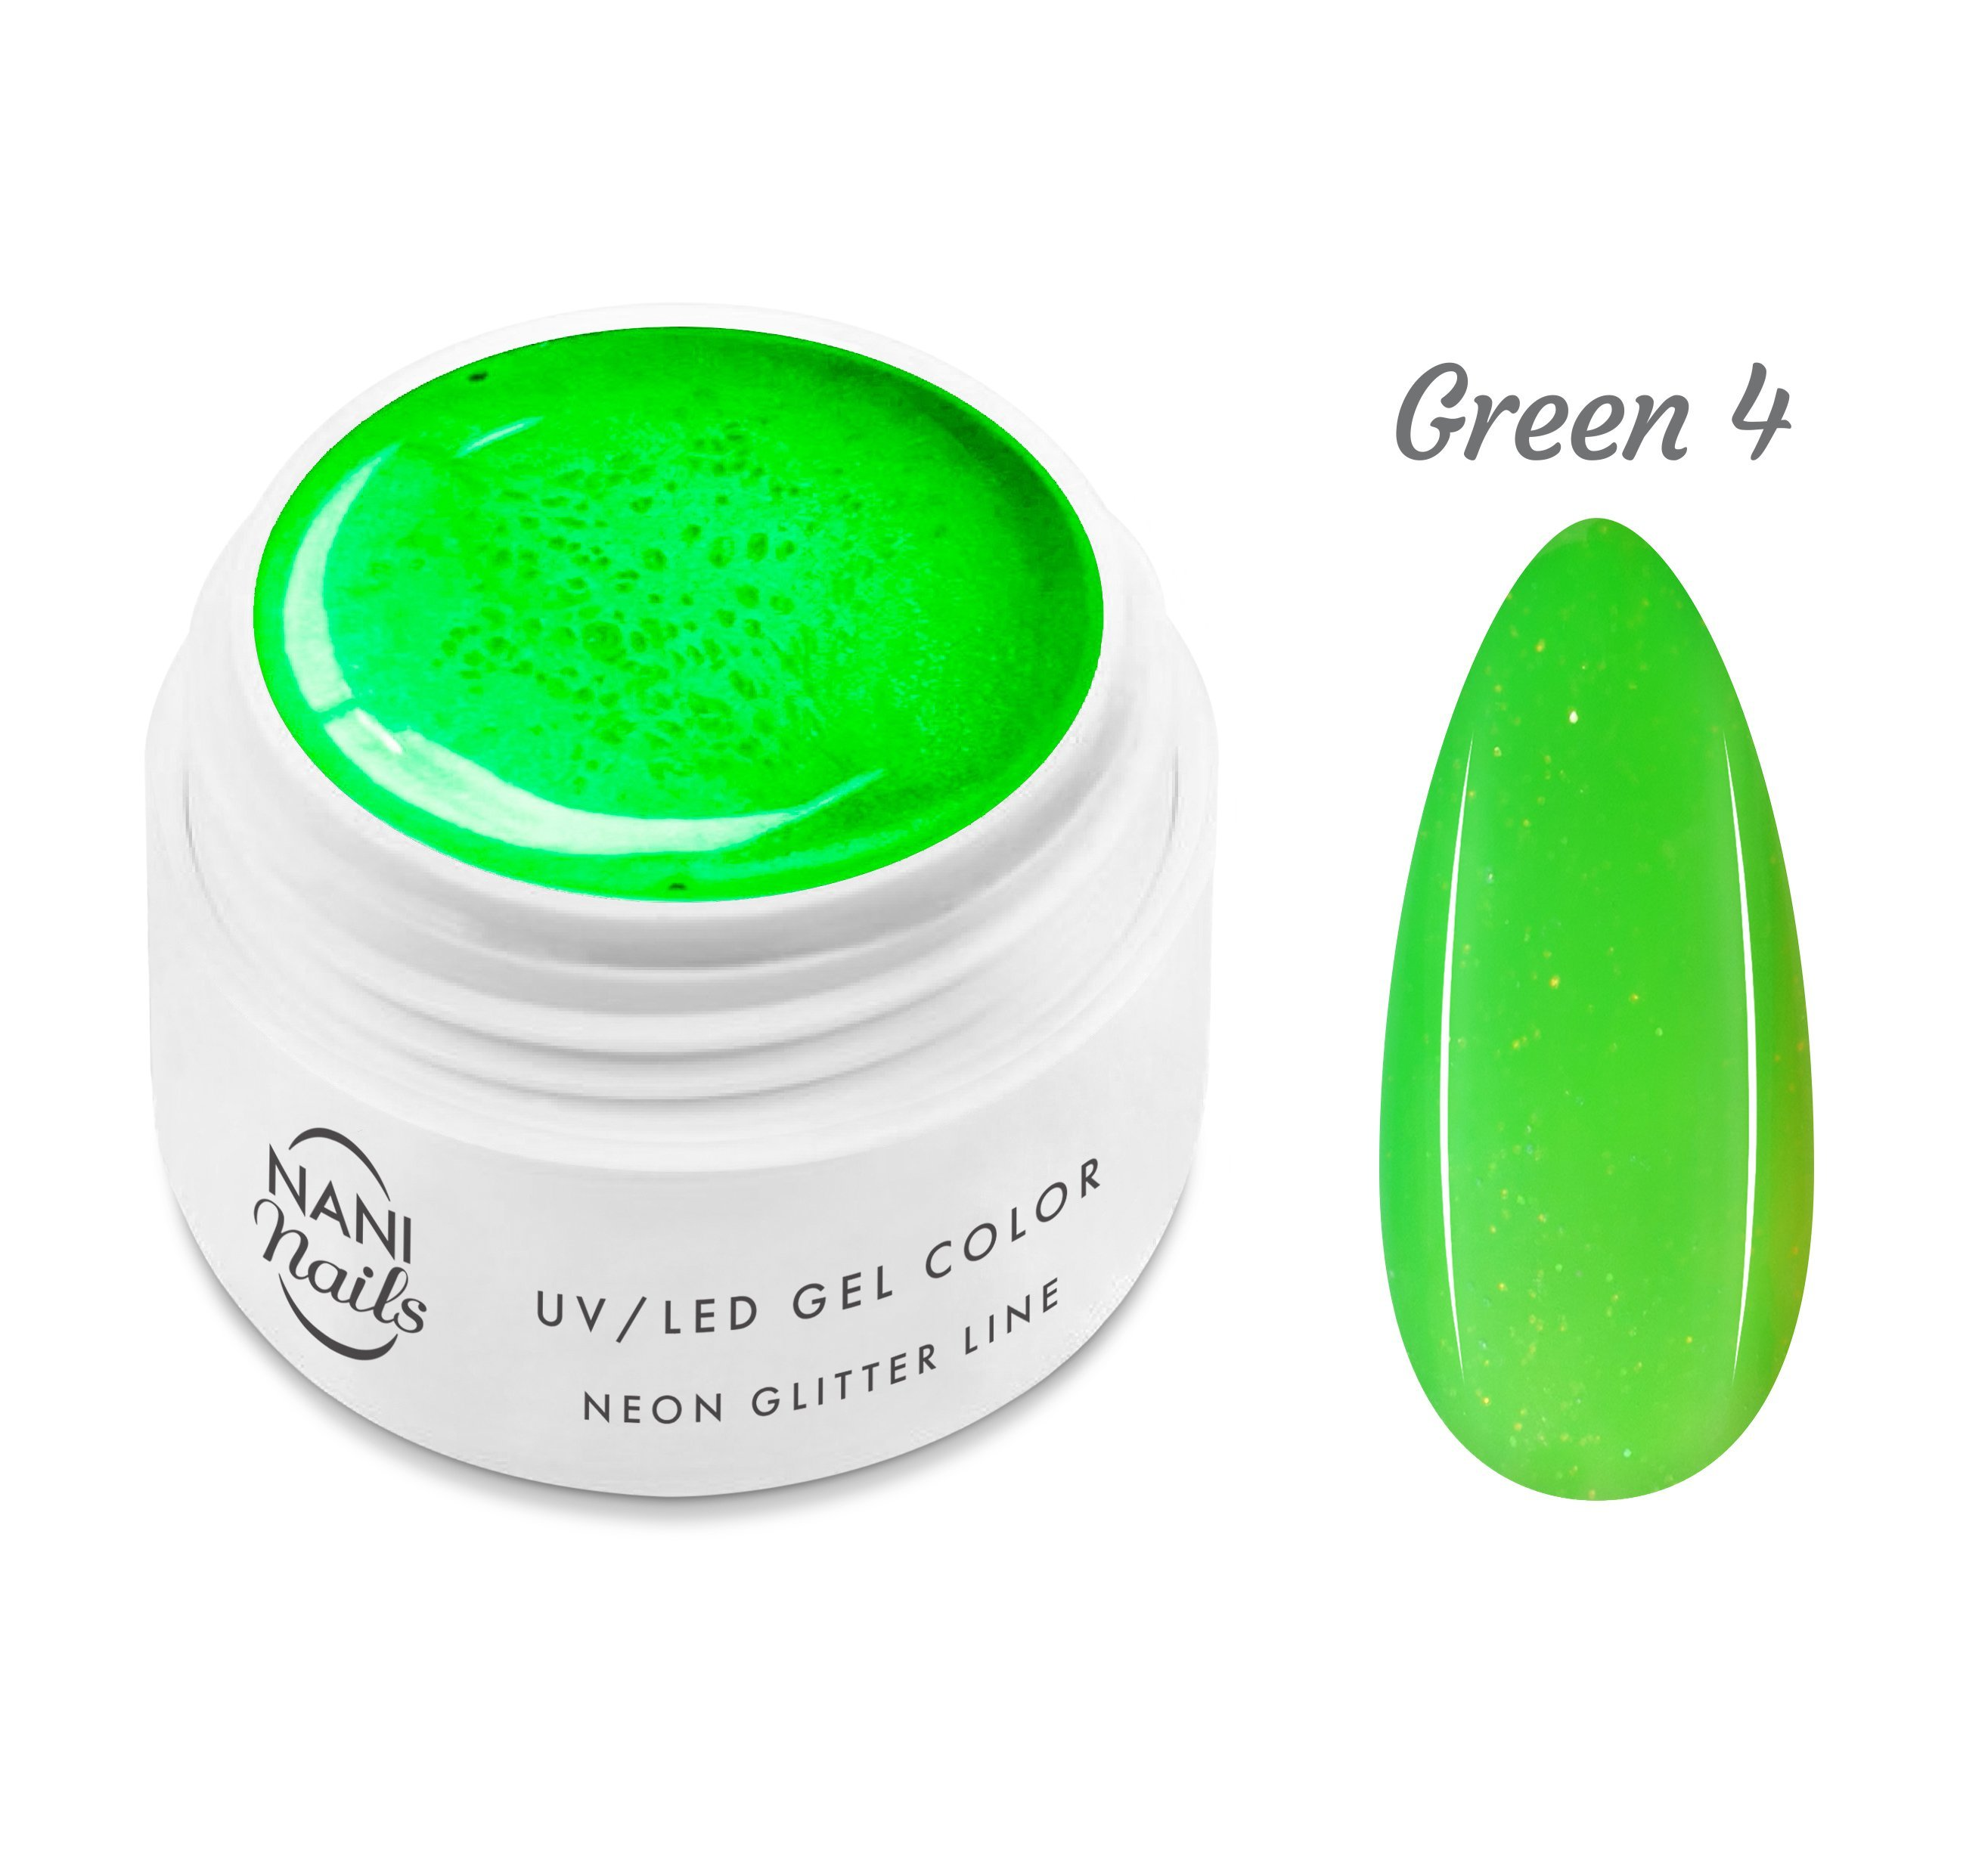 NANI UV gél Neon Glitter Line 5 ml - Green